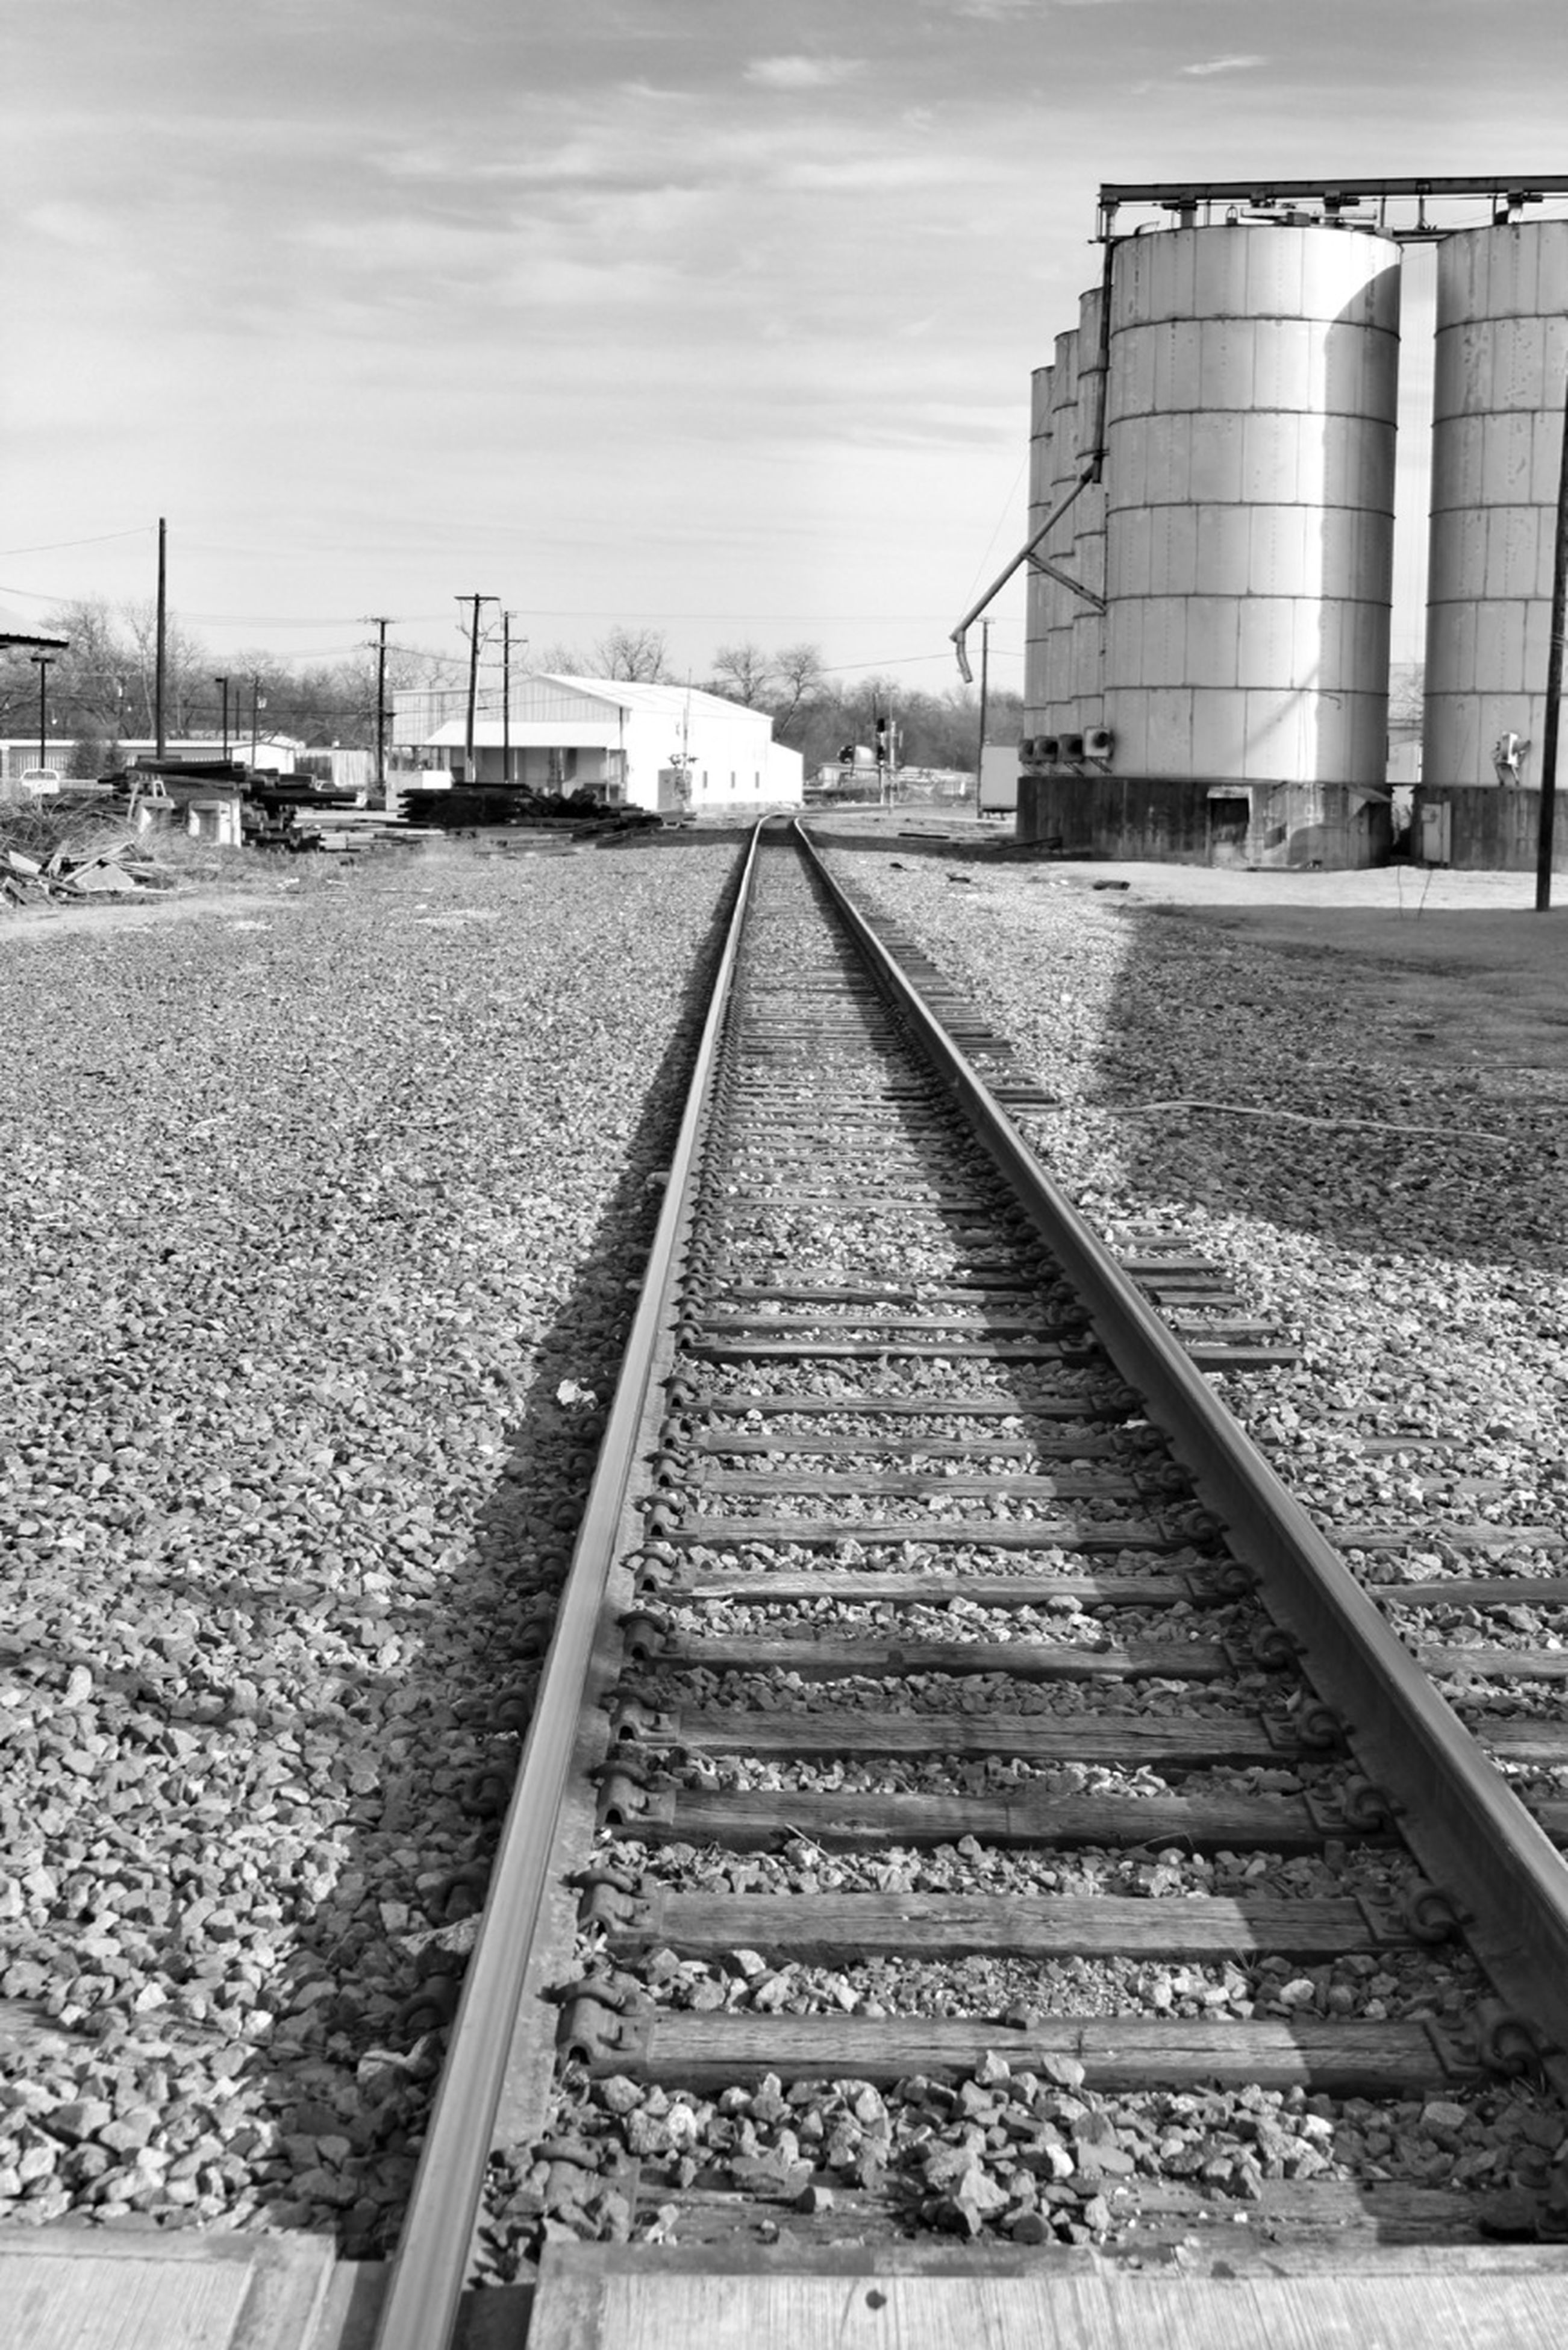 railroad track, rail transportation, the way forward, transportation, diminishing perspective, sky, vanishing point, built structure, architecture, public transportation, cloud - sky, building exterior, railroad station platform, railway track, railroad station, surface level, day, outdoors, cloud, straight